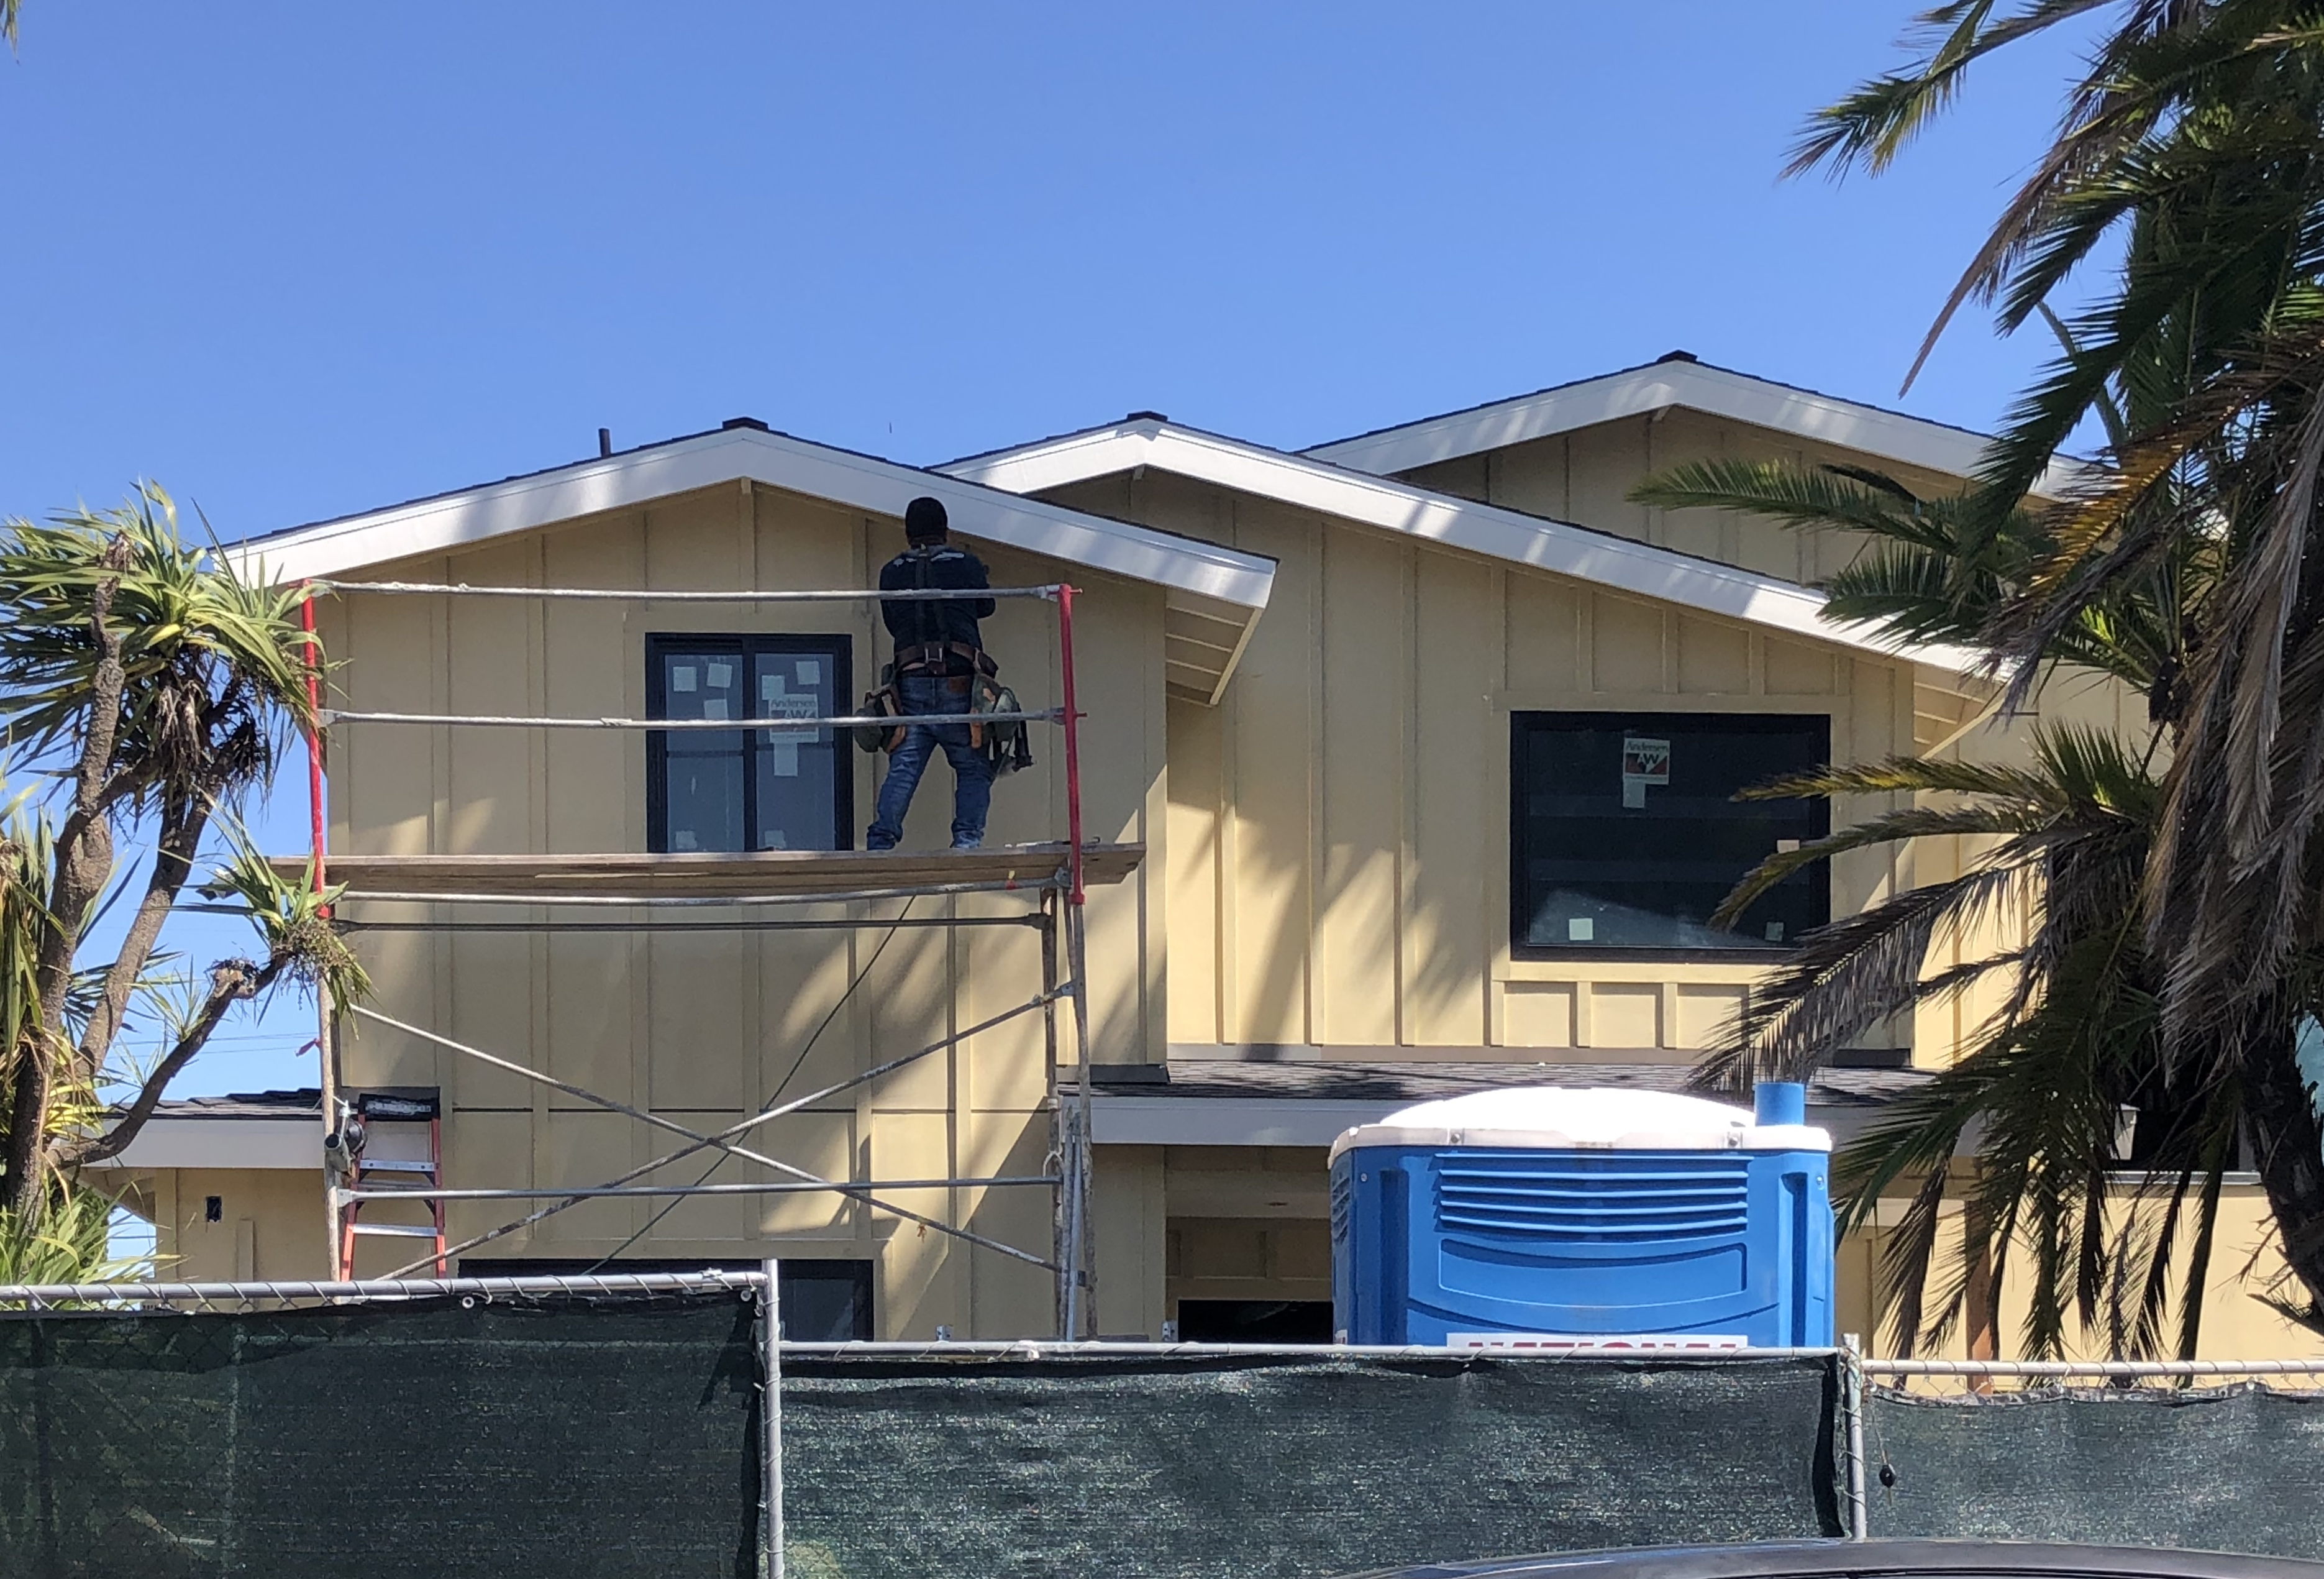 Building and home Construction is considered an essential business and continues throughout the southland. | Karen Foshay/KCET